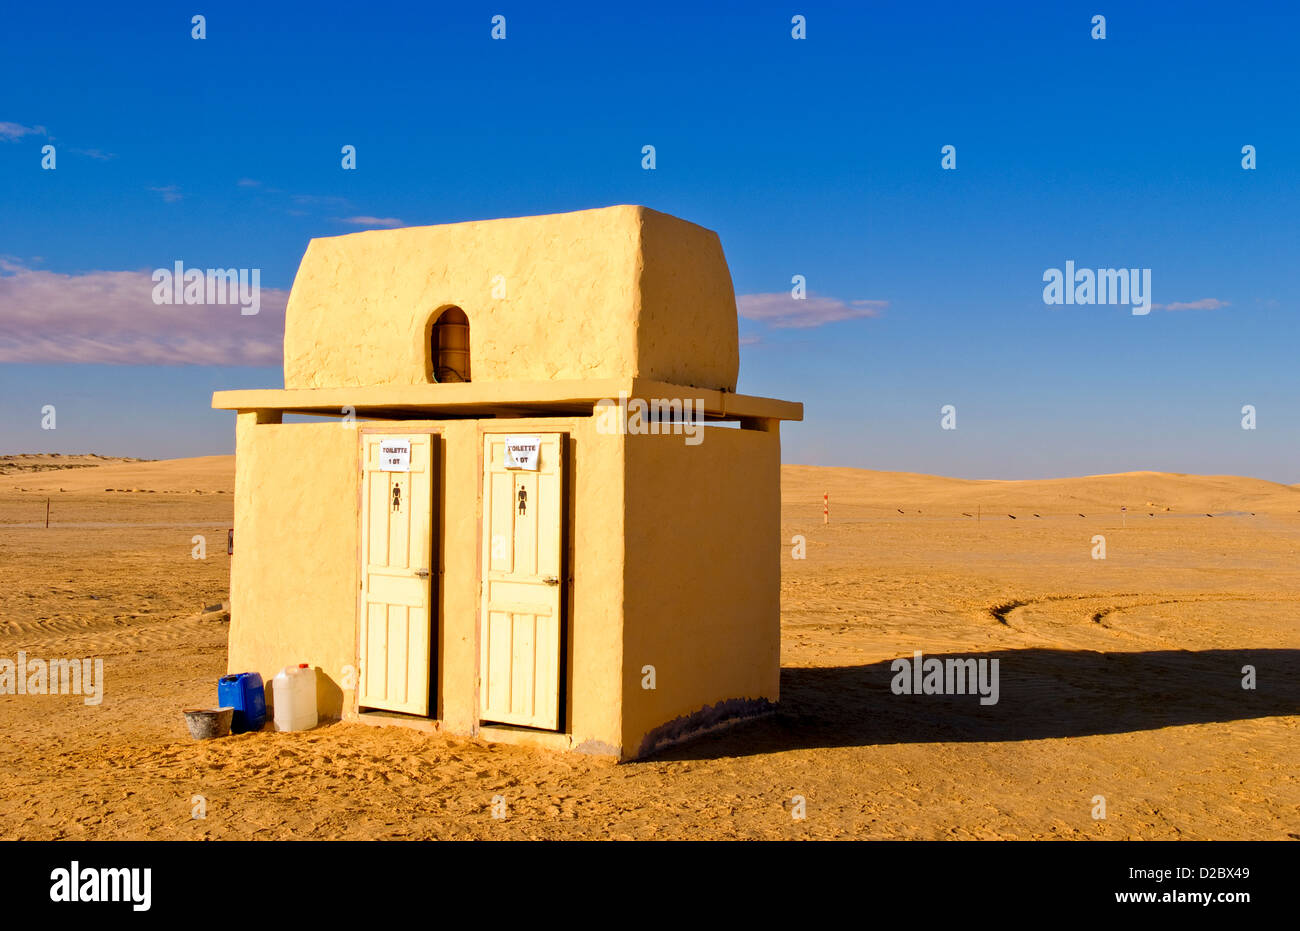 Toilets In The Middle Of Nowhere At Star Wars Movie Set Near Tozeur, Tunisia - Stock Image